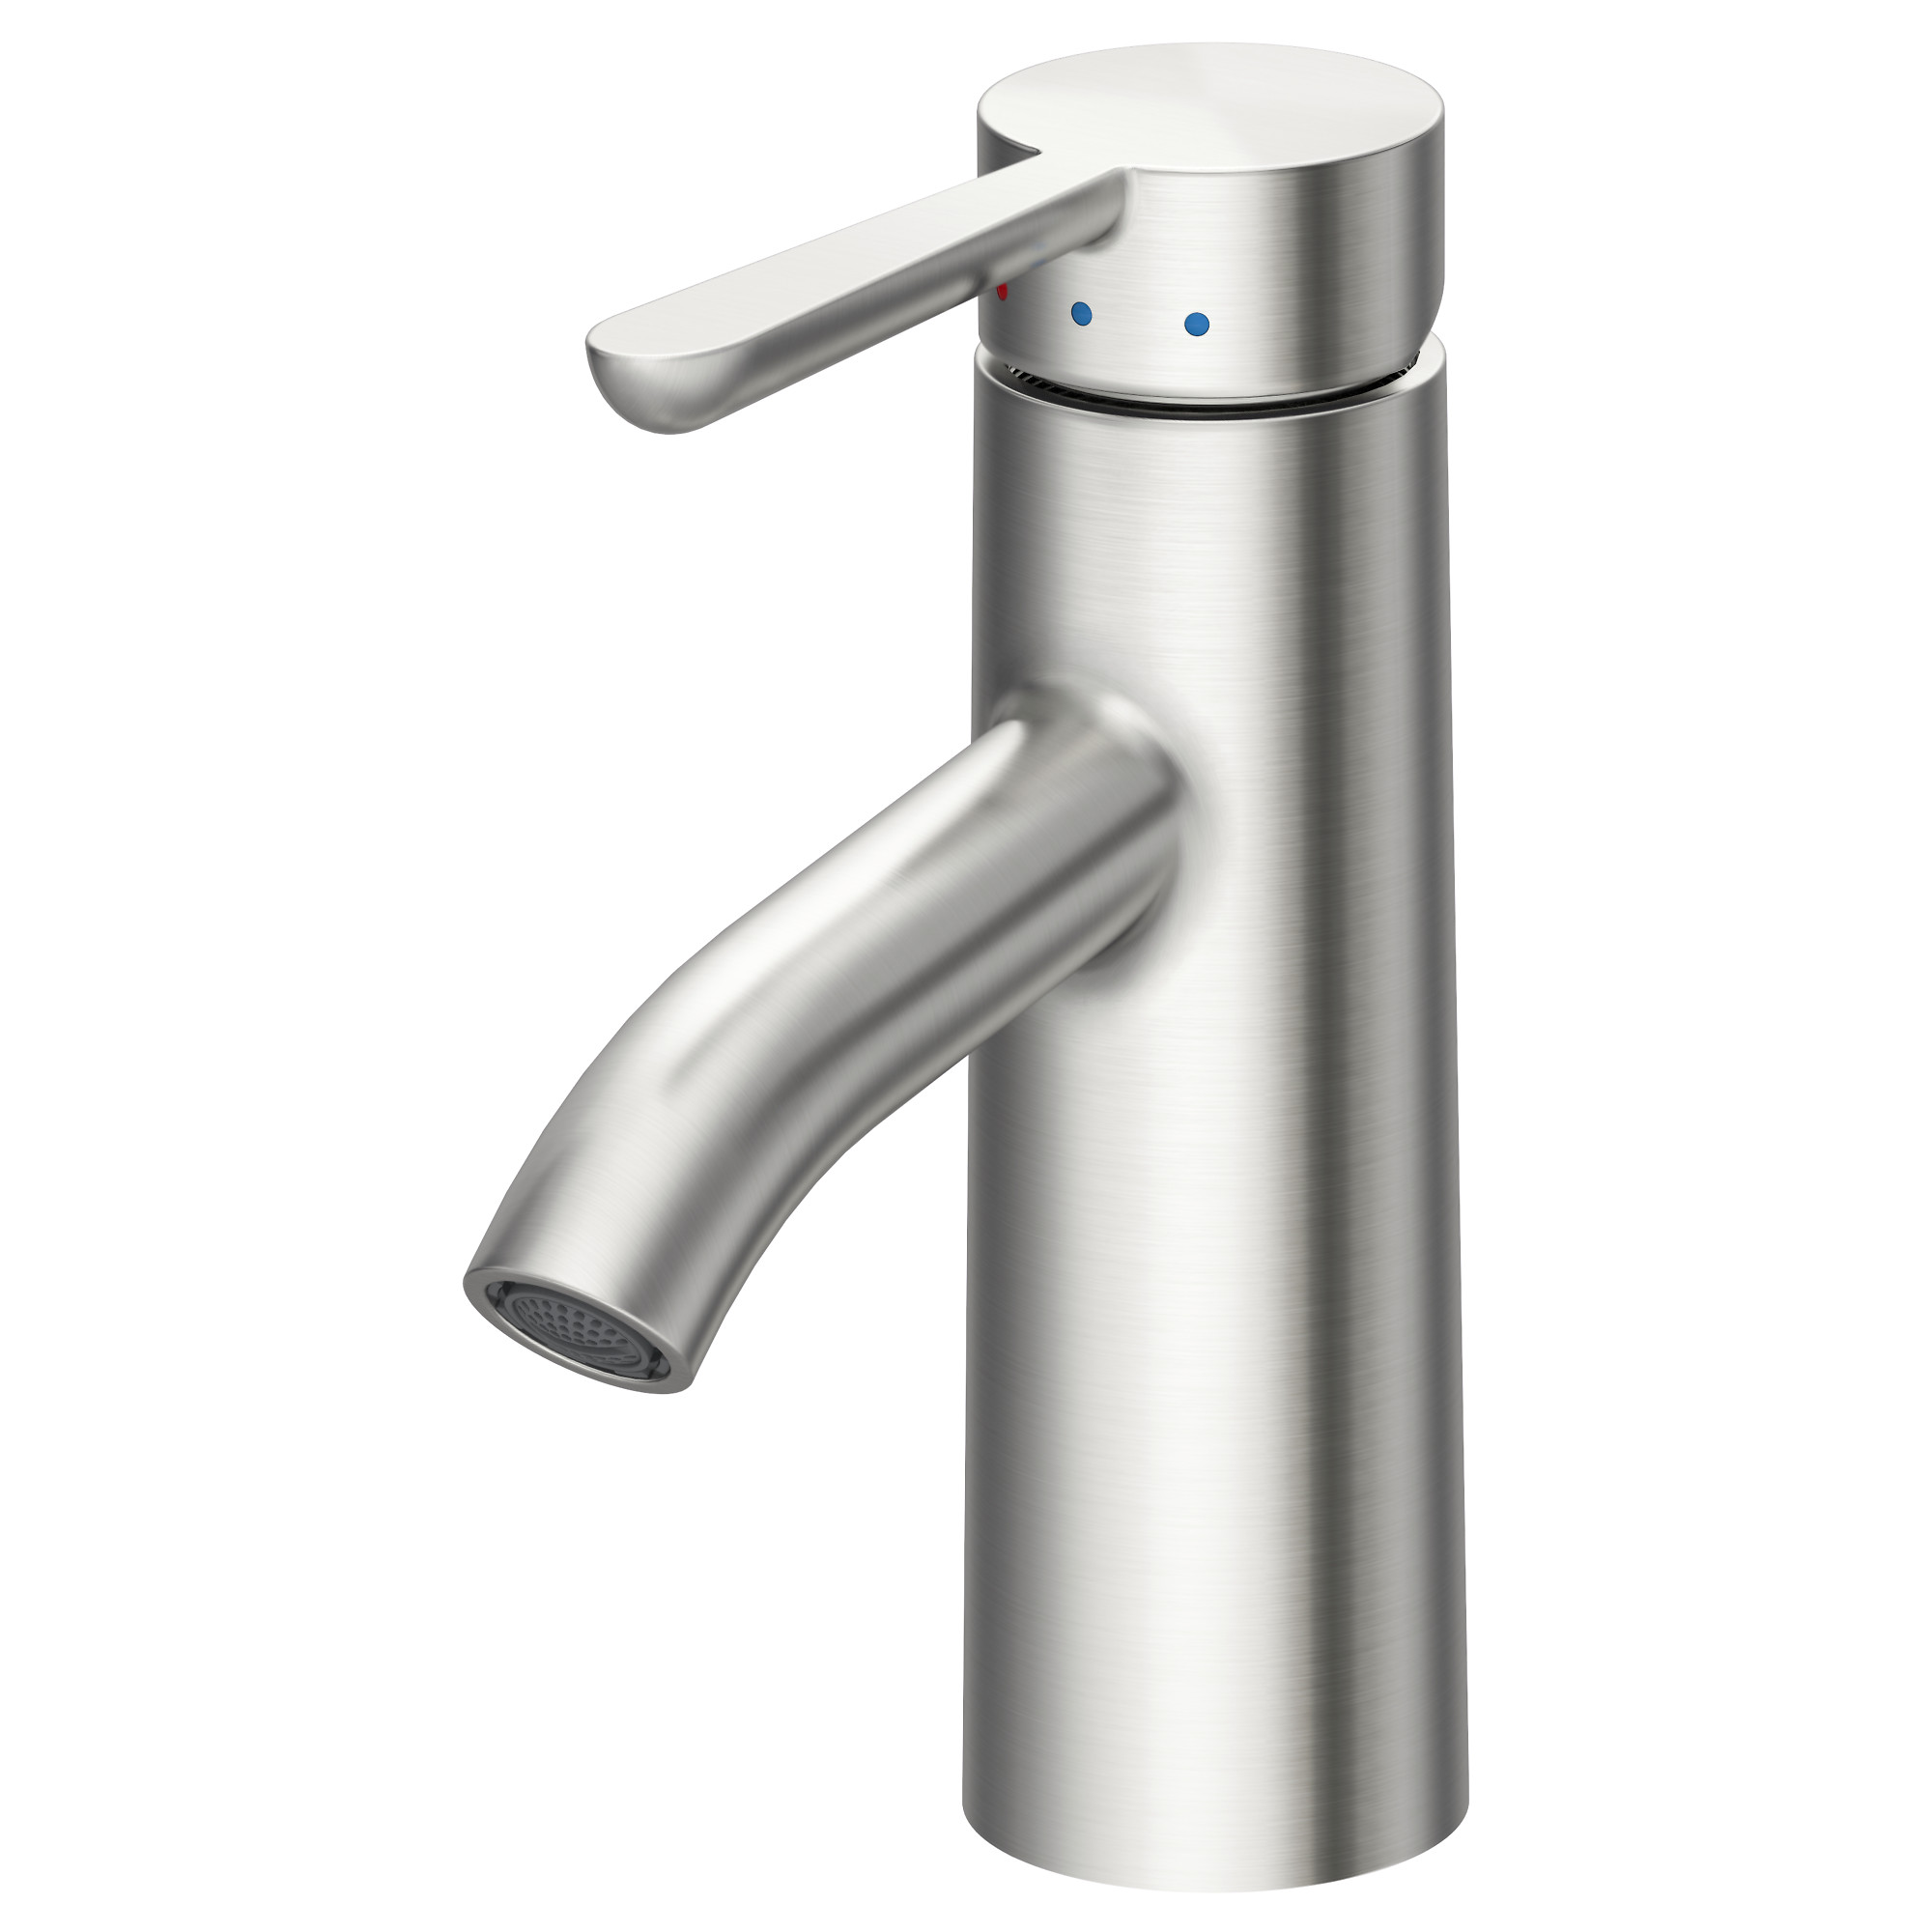 of touch pin add to bathroom in bath waterfall elegance this filler handshower with mixer your modern taps a faucet lavatory floor tub stylish mounted chrome